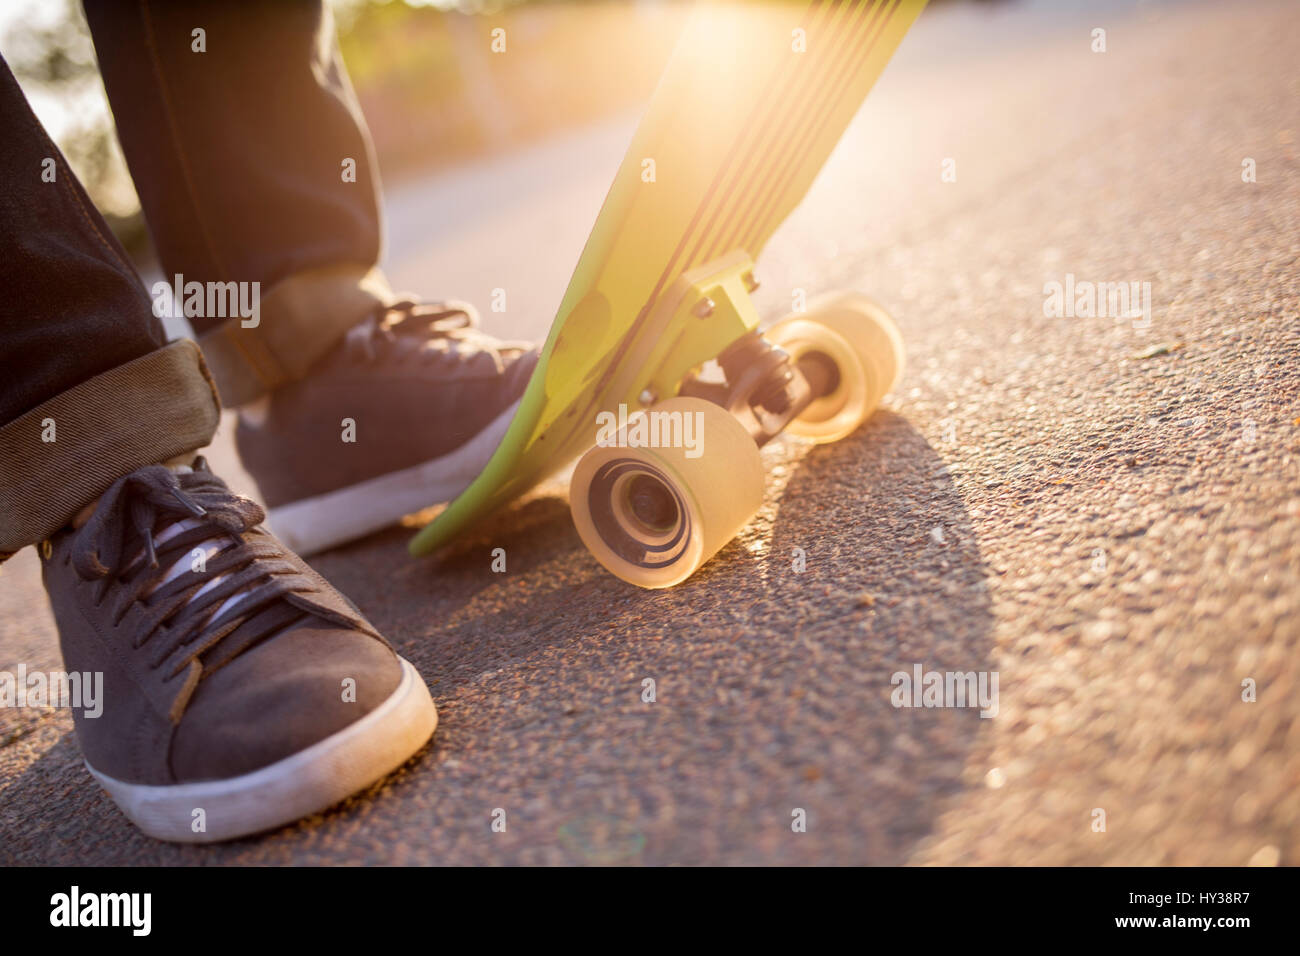 Sweden, Feet of man with skateboard - Stock Image